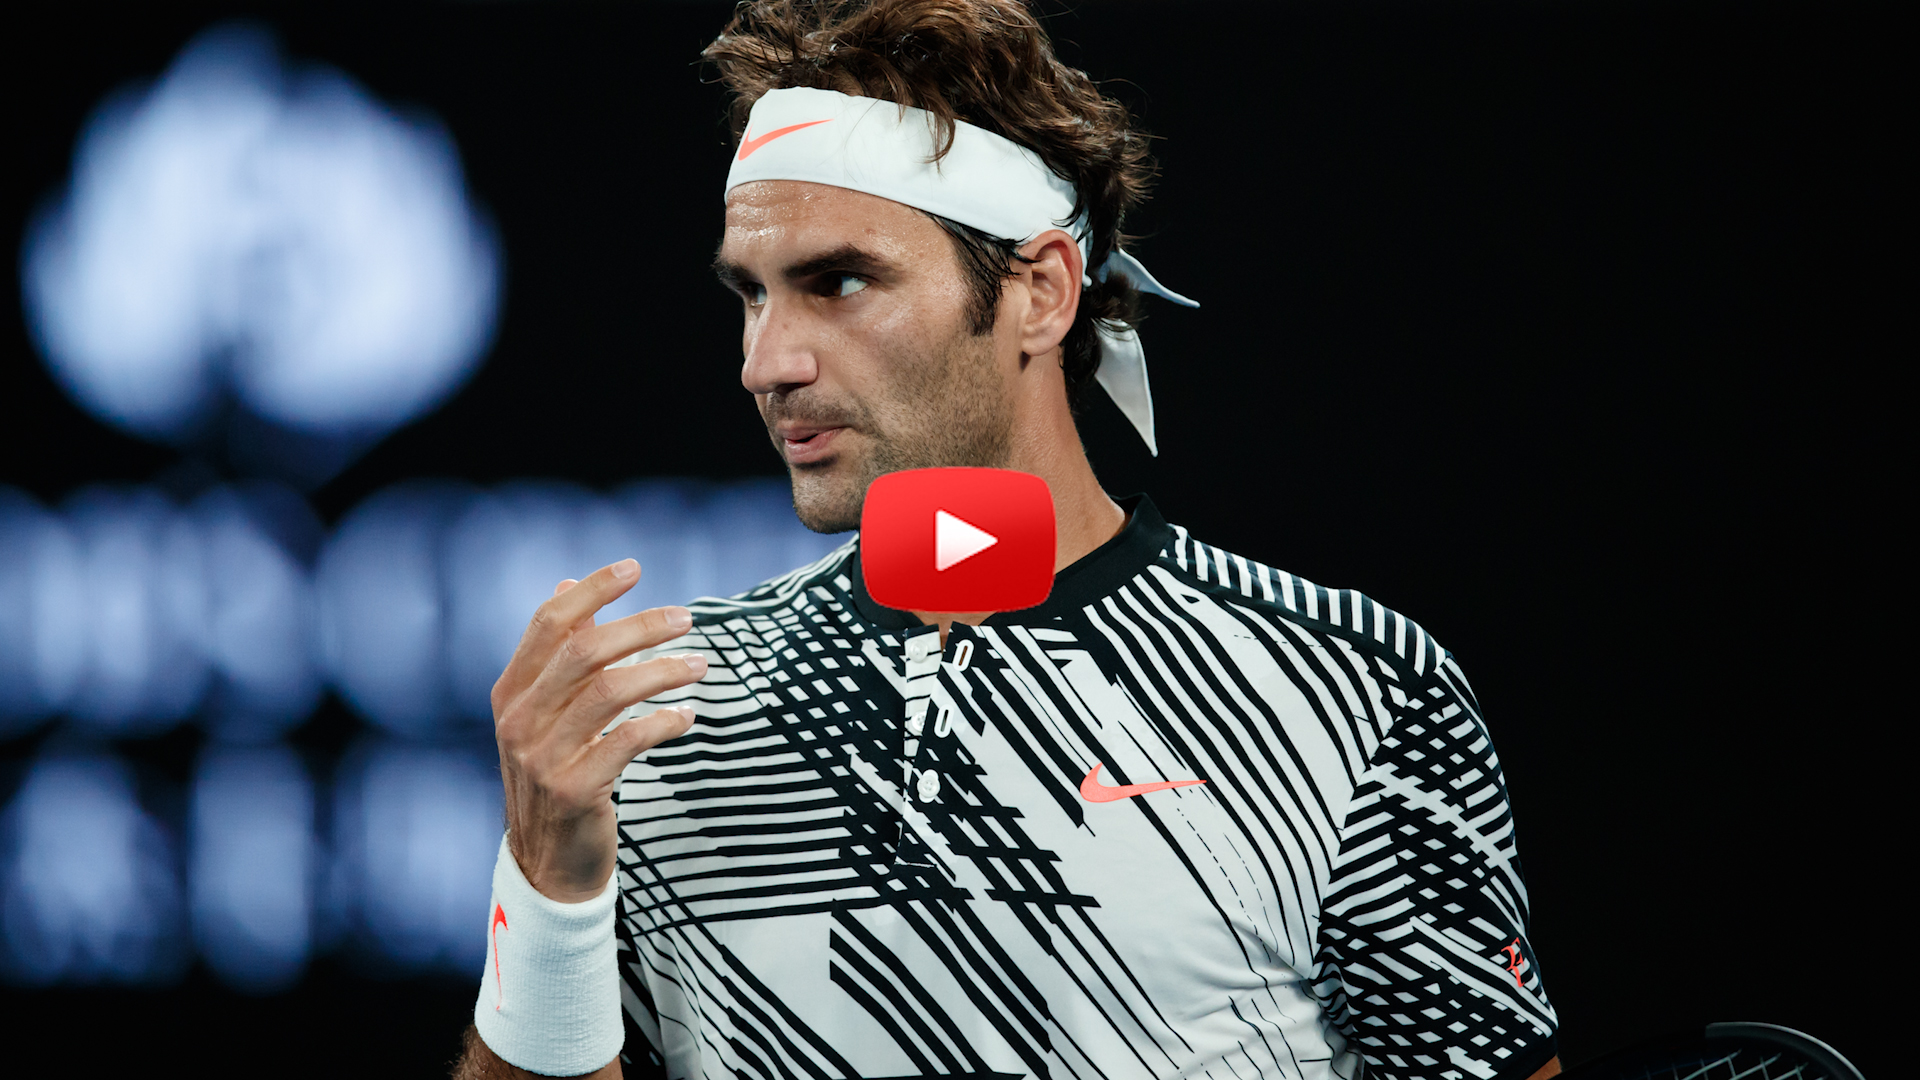 Federer's Winning Return-Most Painful Shot-Knockout Challenge